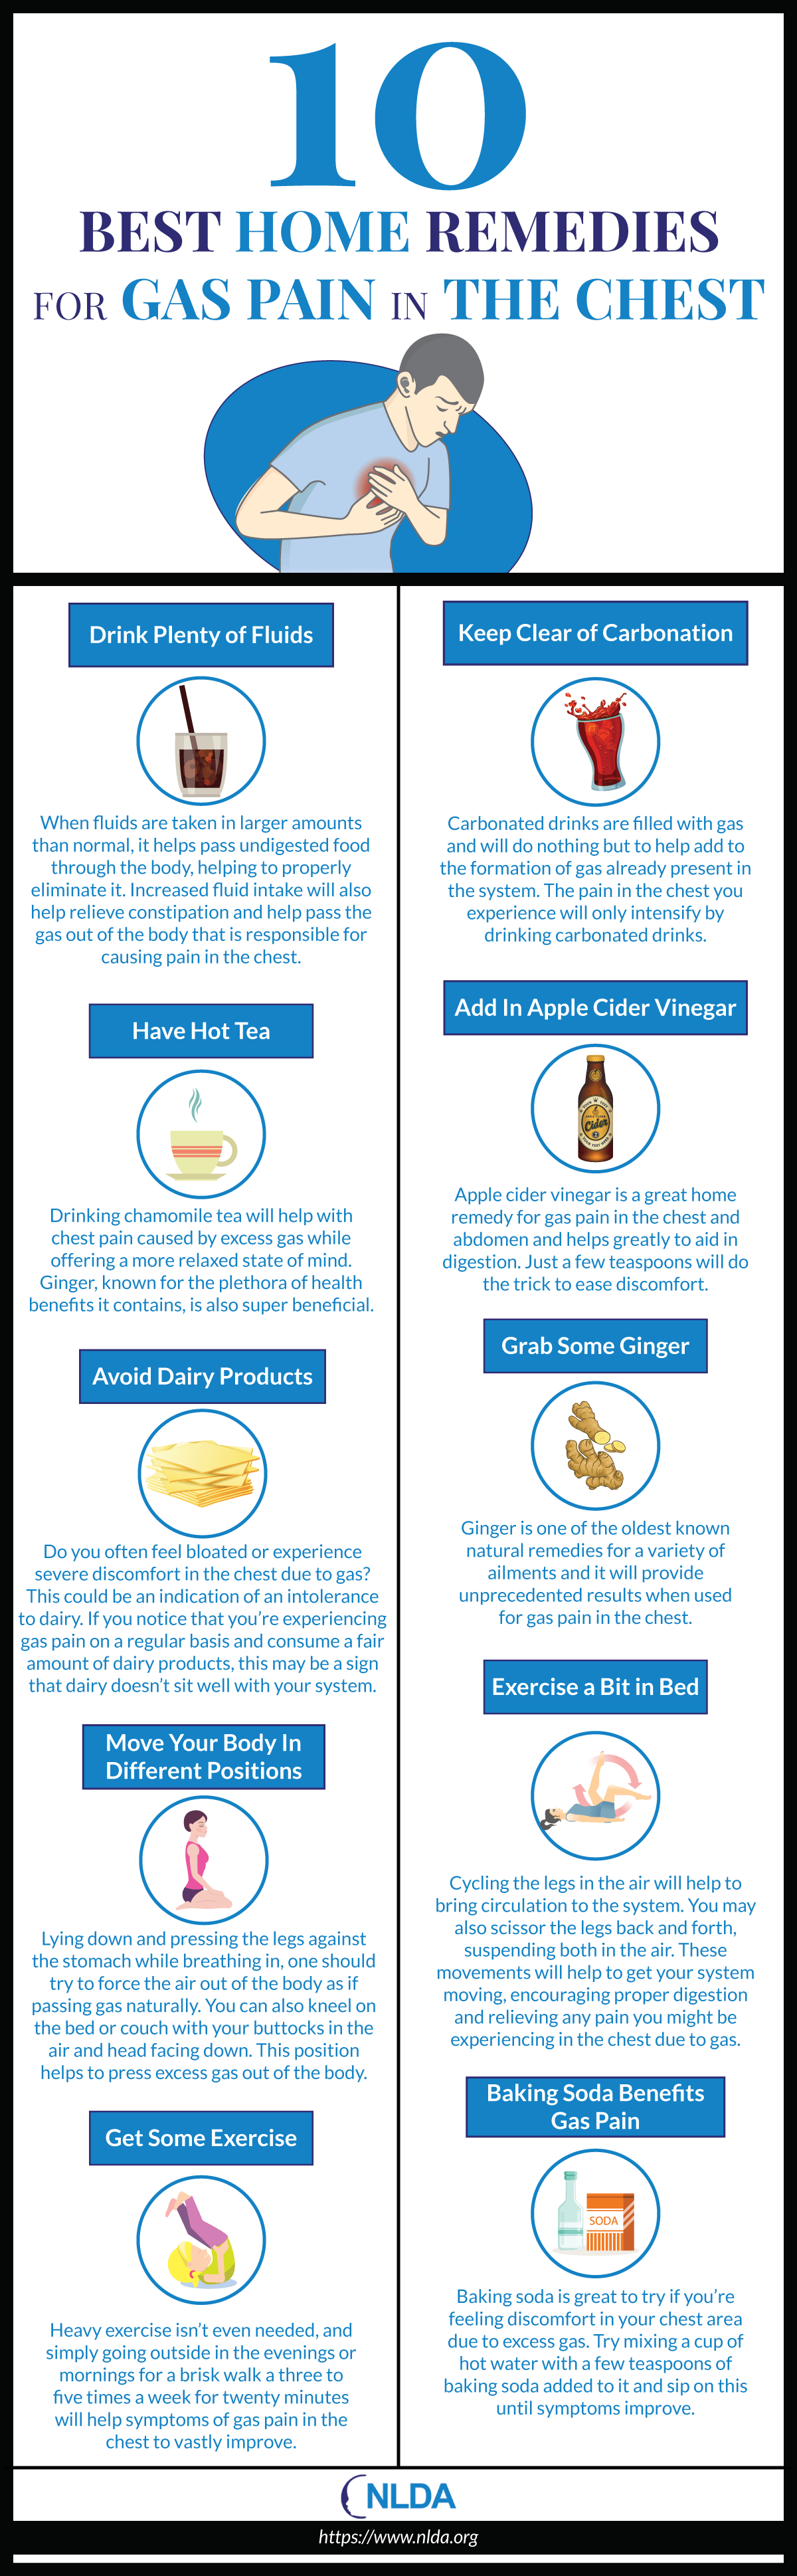 No More Gas Pains in the Chest: 10 Home-Made Remedies - Infographic